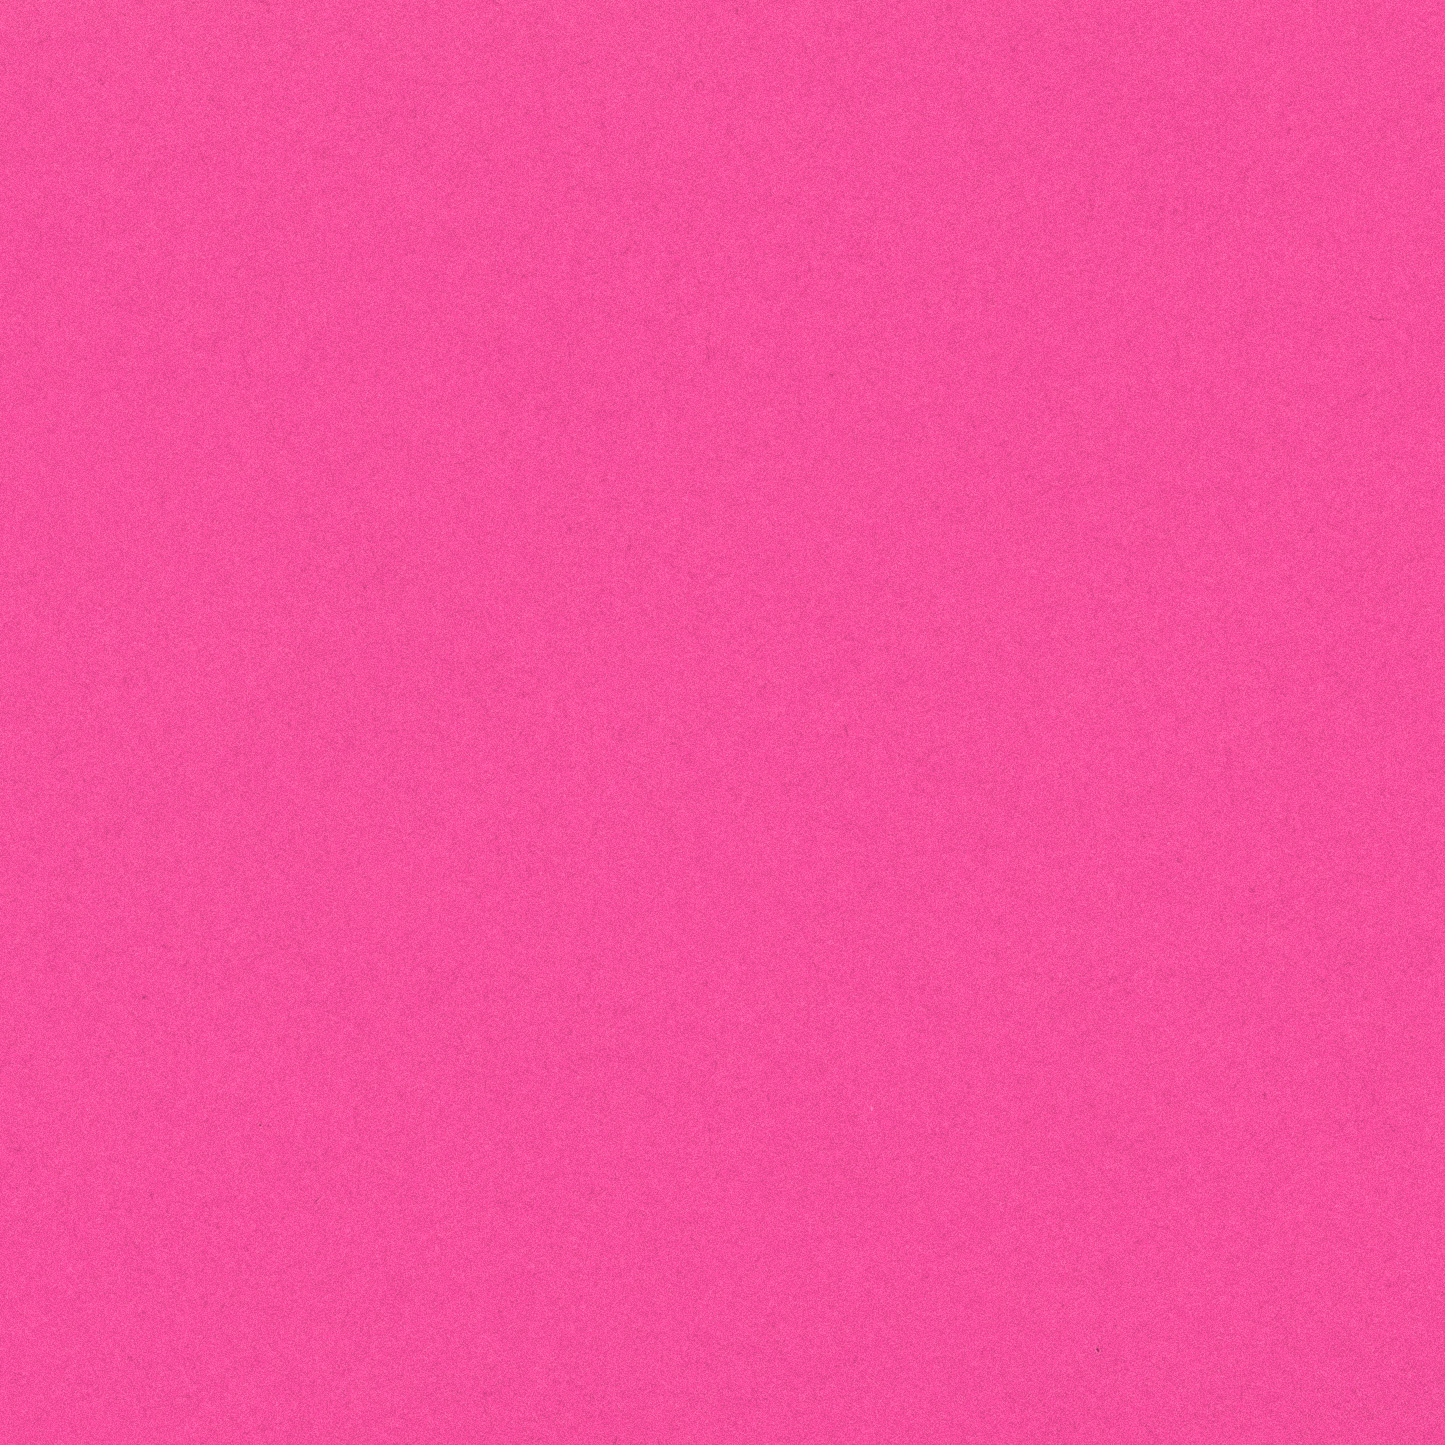 Pink - Square Sizes